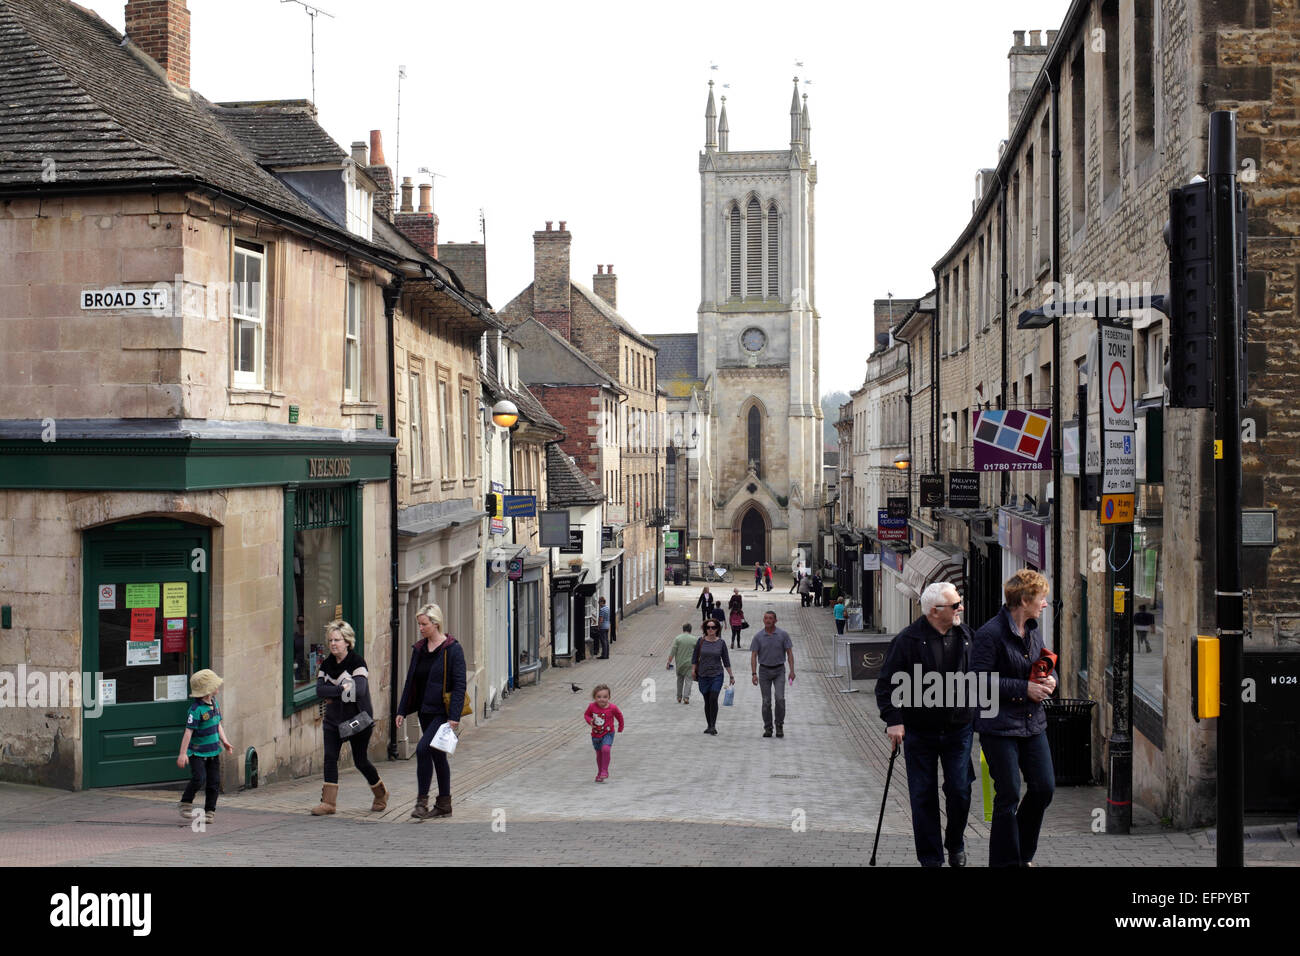 Looking down Iron-monger Street, Stamford, Lincolnshire. towards St Michael's Church. - Stock Image